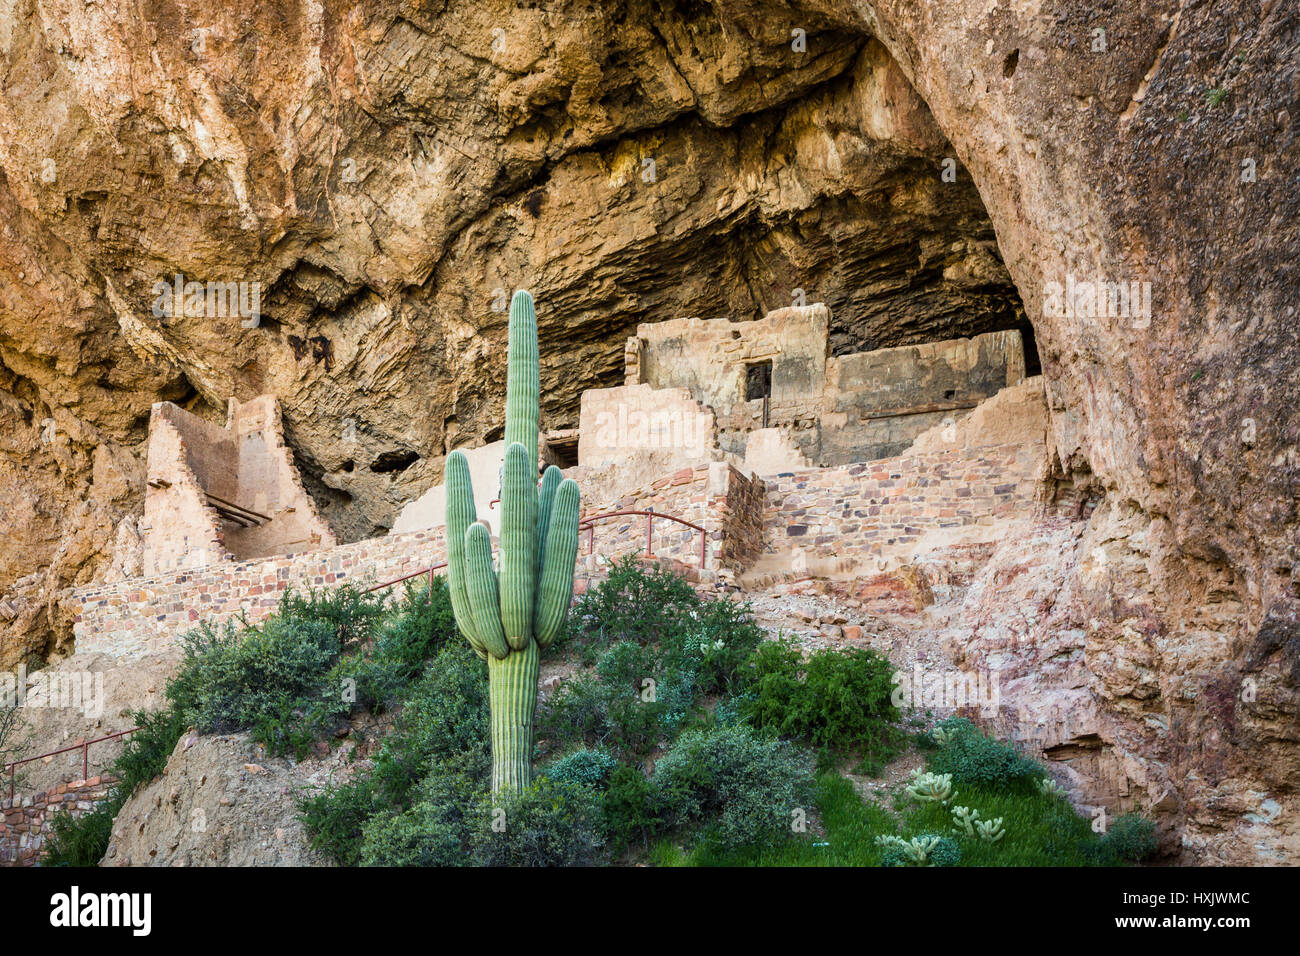 The Lower Cliff Dwelling of the Tonto National Monument, Arizona, USA. - Stock Image